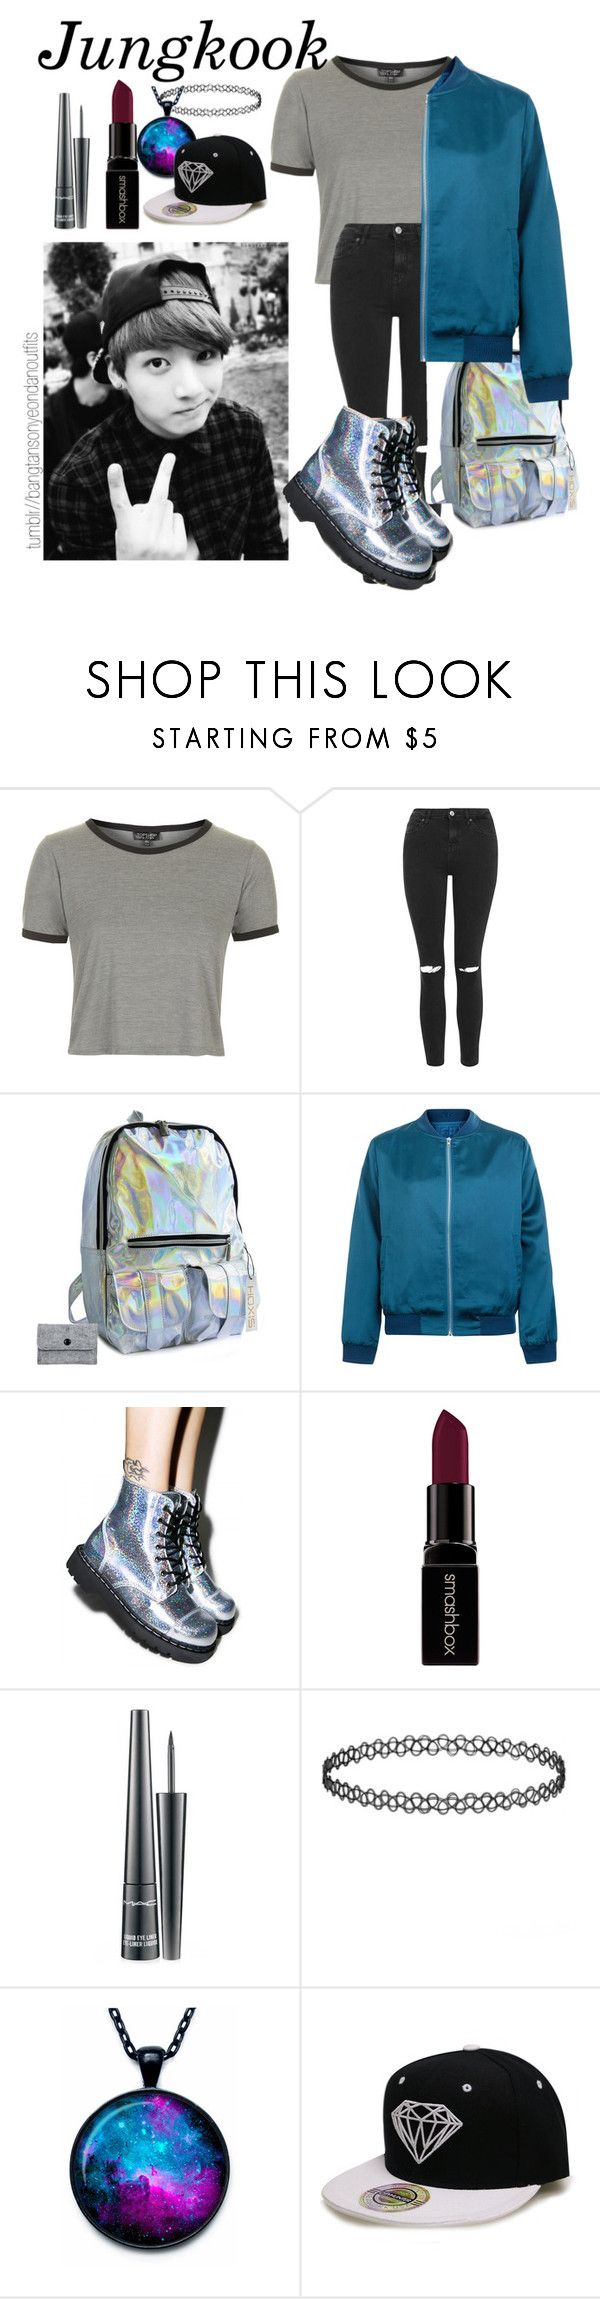 """BTS inspired aesthetic outfit - Jungkook"" by bangtanoutfits ❤ liked on Polyvore featuring Topshop, Cameo Rose, T.U.K., Smashbox, MAC Cosmetics, kpop, bts and jungkook"